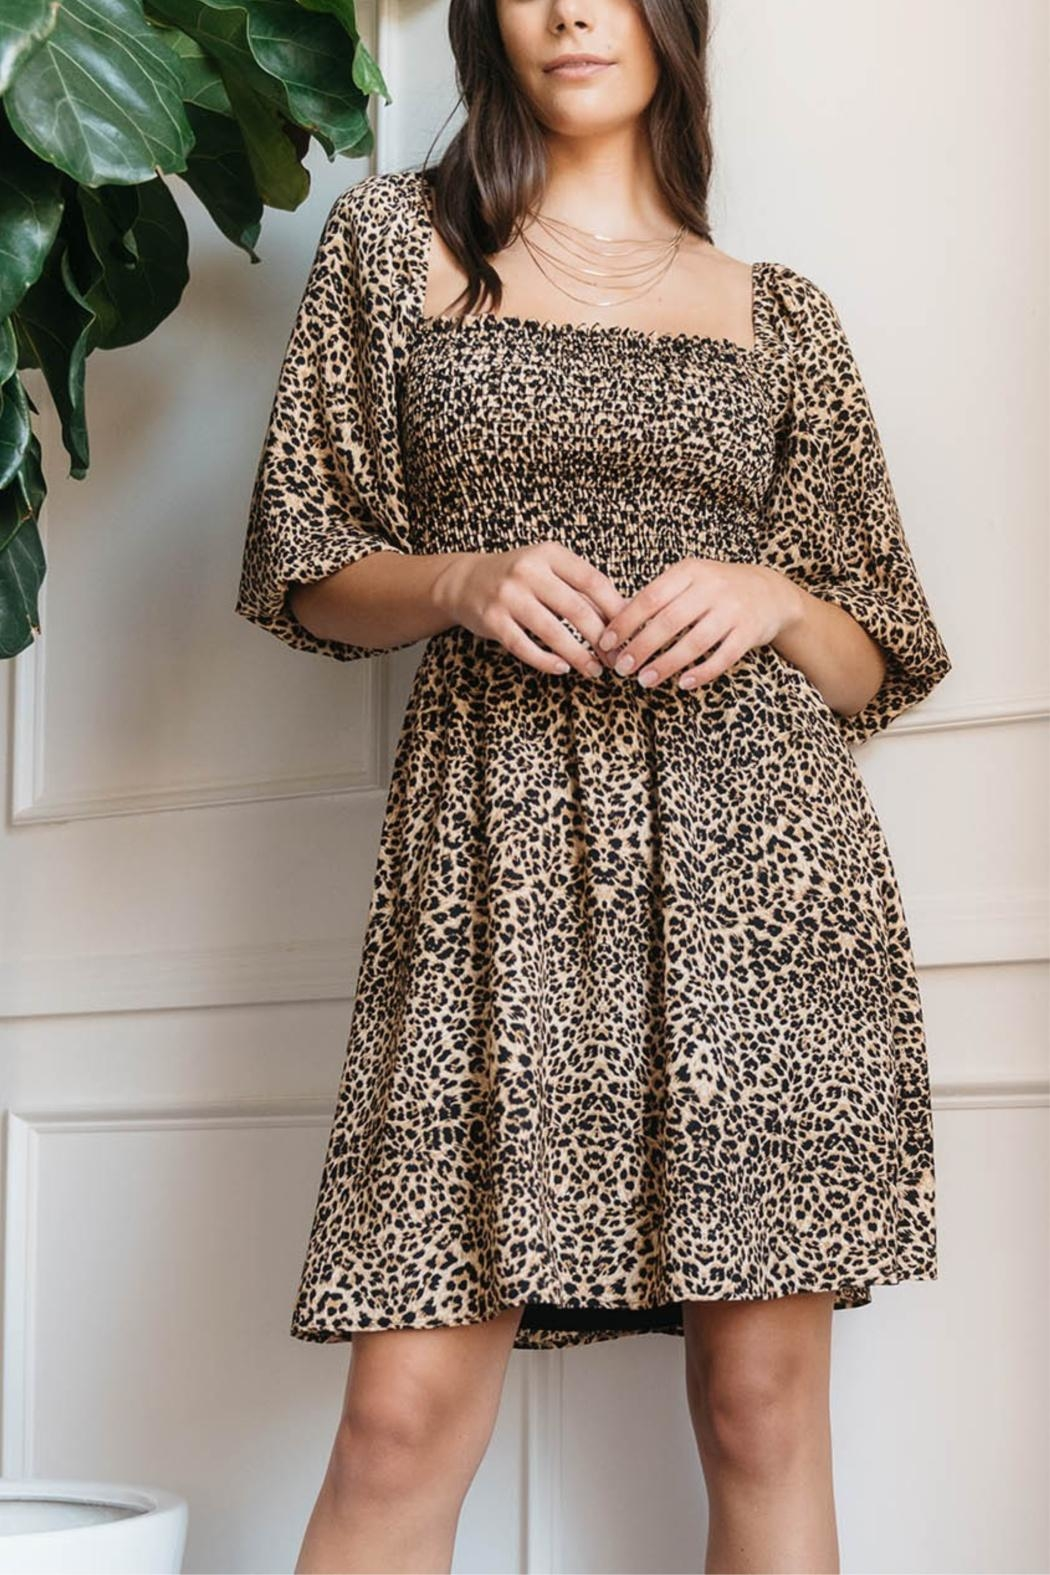 Everly Smocked Animal Print Dress - Front Cropped Image